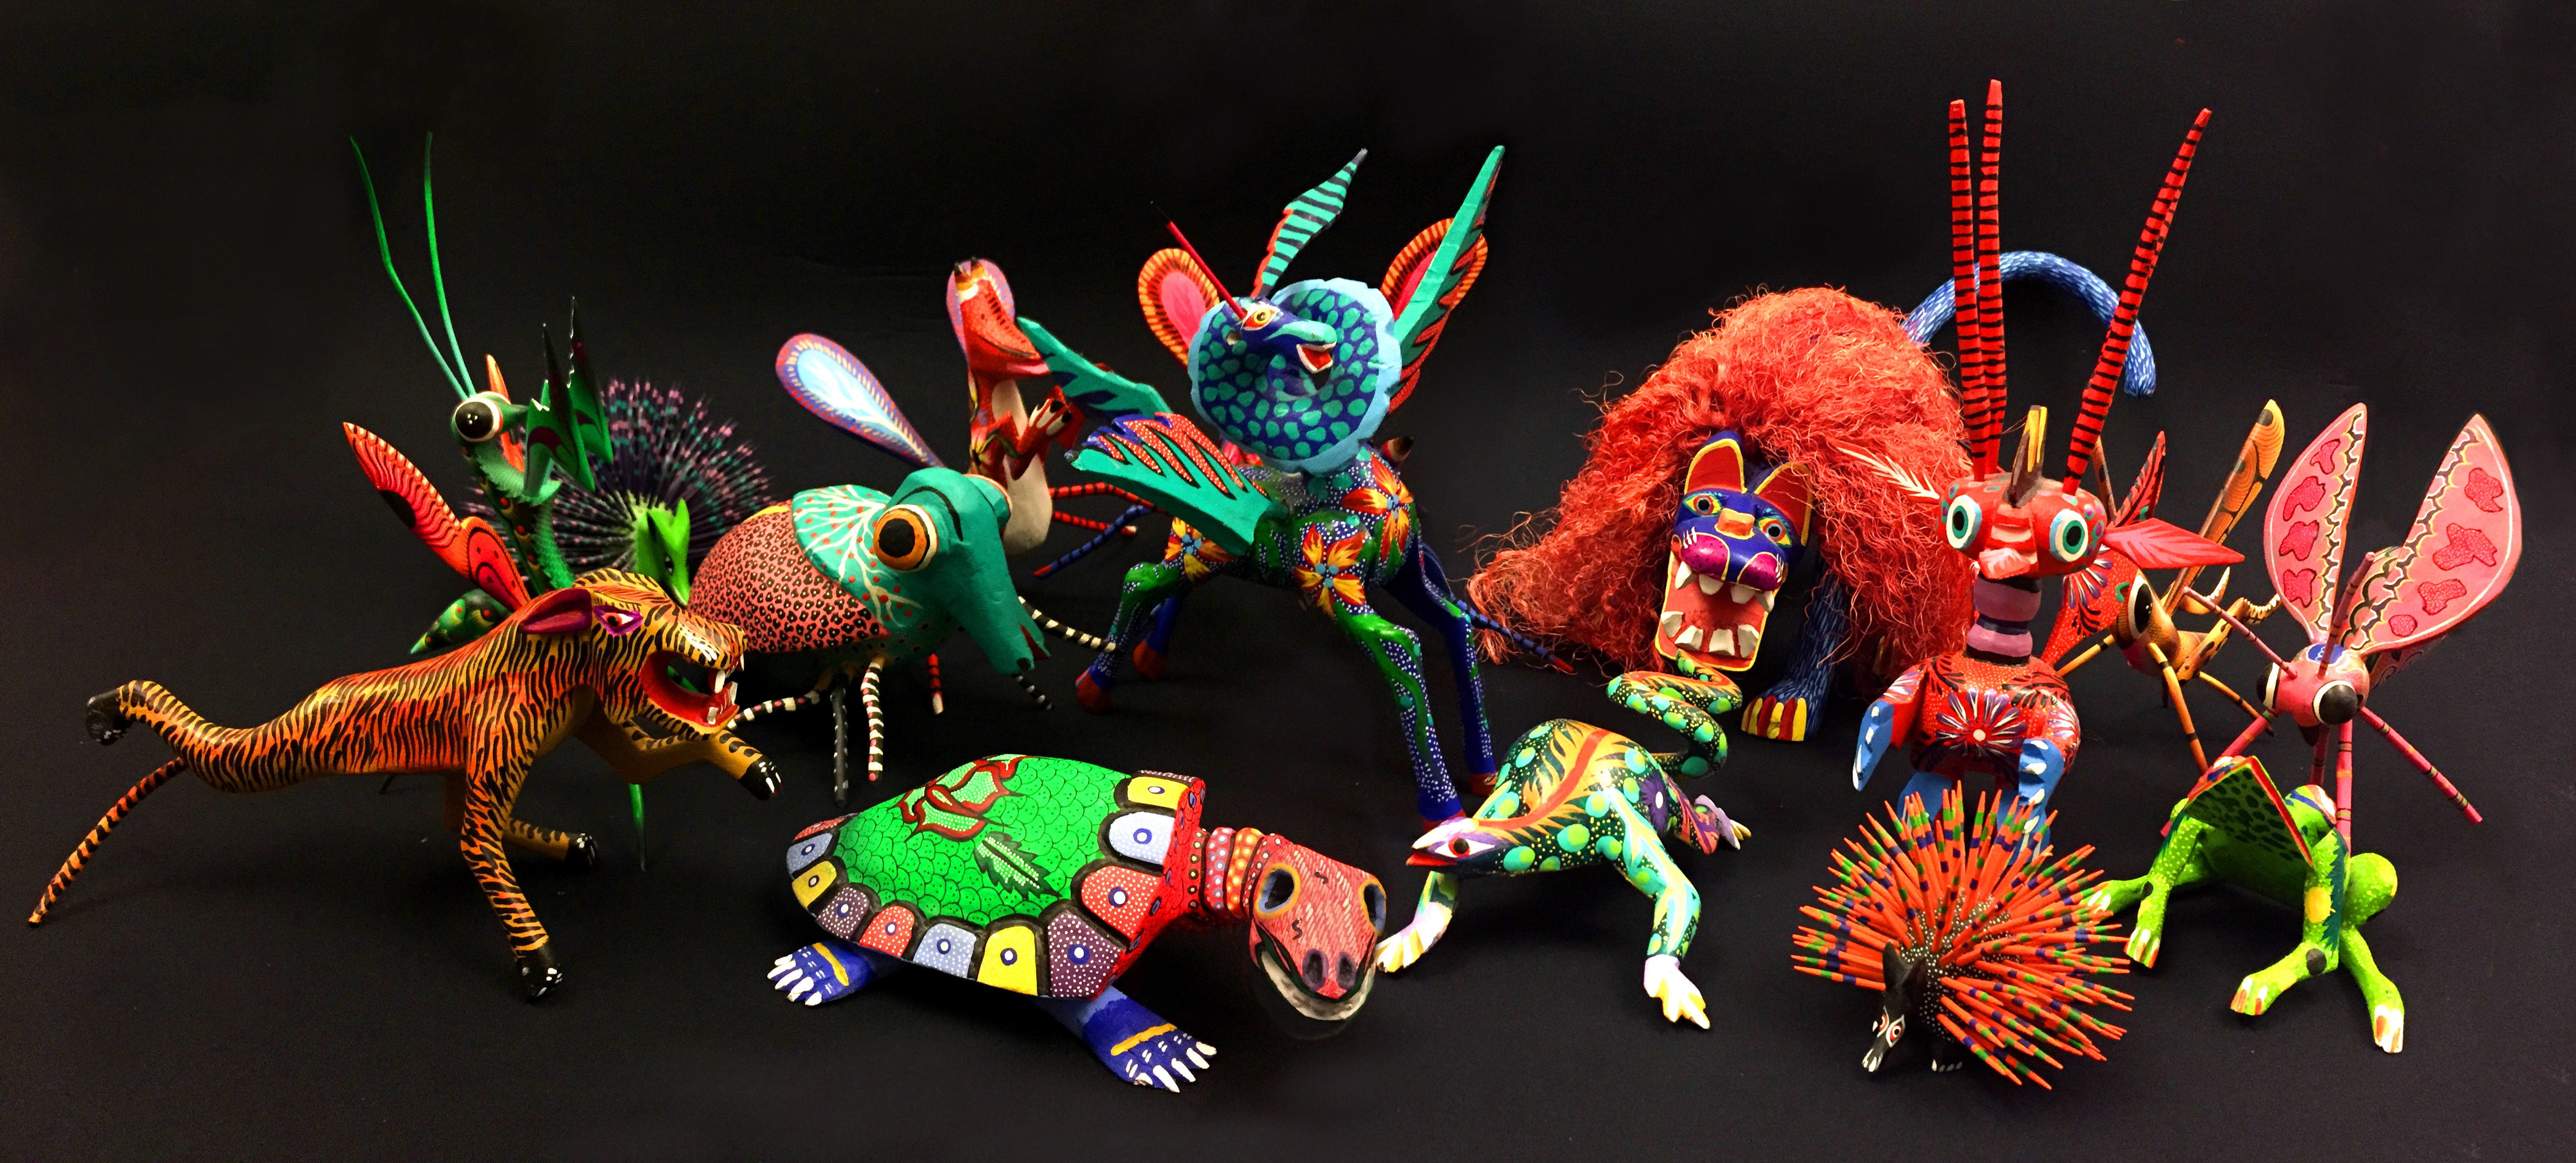 The Making of Pixar COCO Pepita AND Dante And What the Heck are Alebrijes?#PixarCOCOEvent